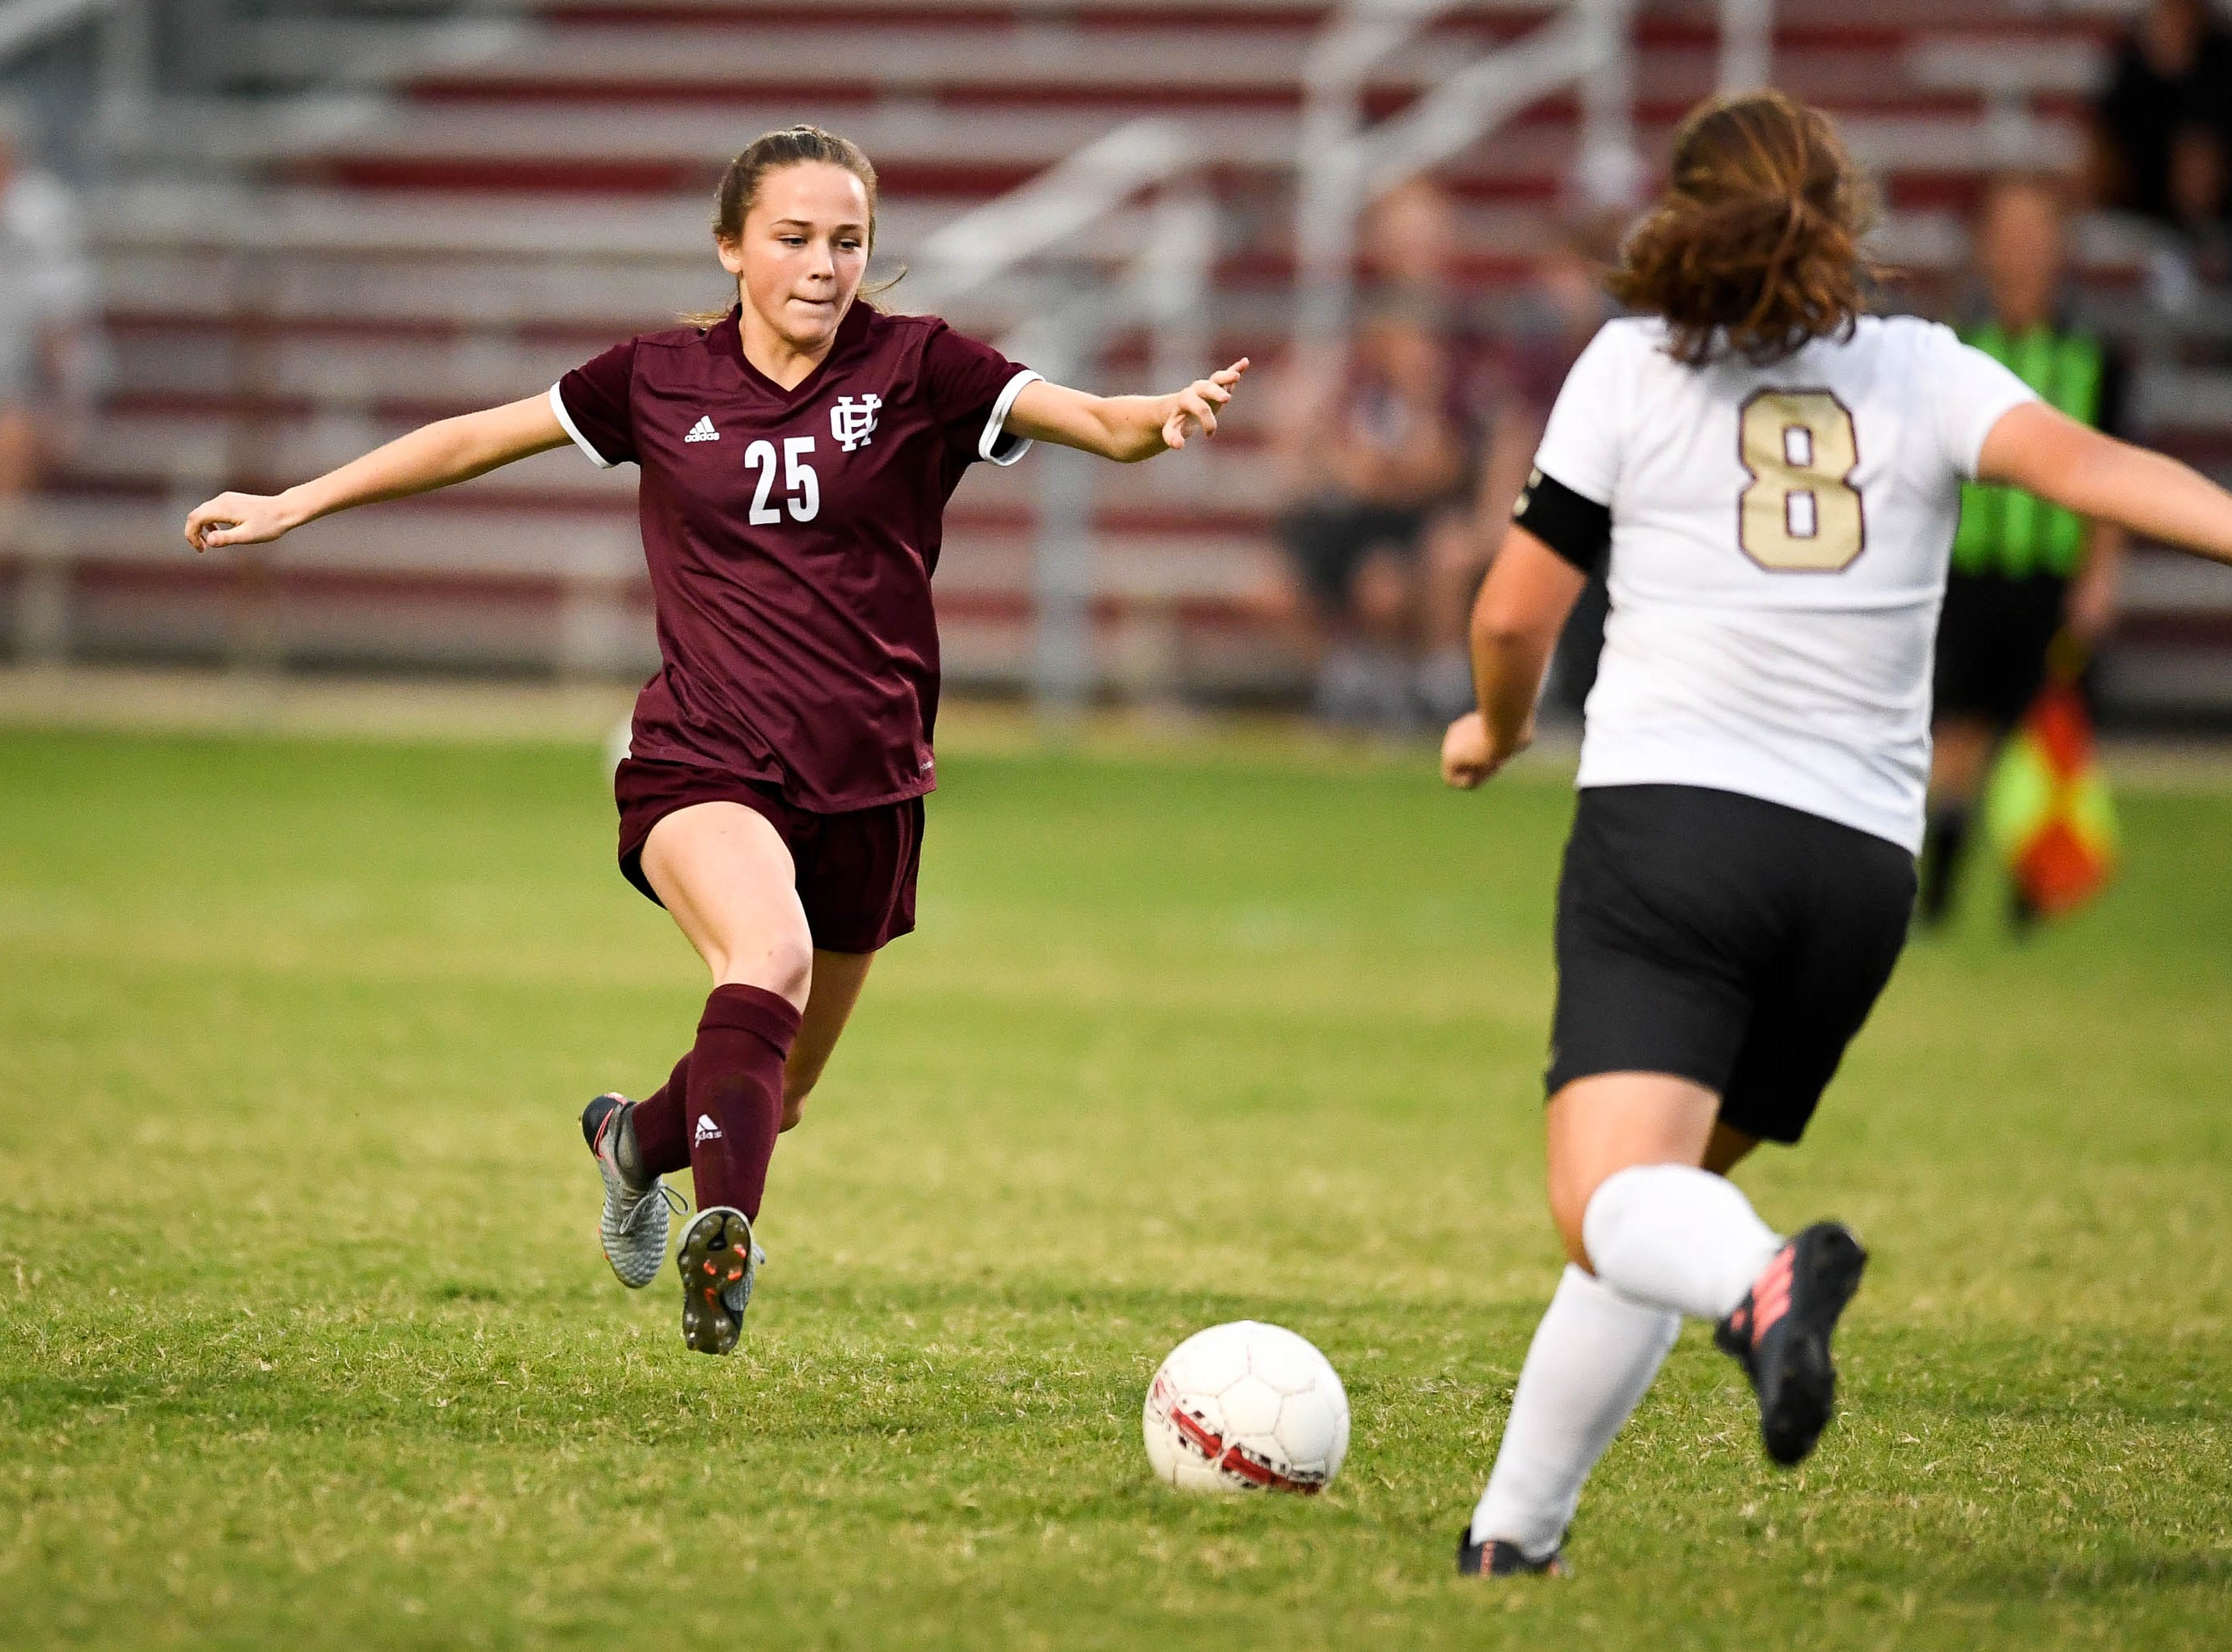 Henderson's Kate Reusch (25) and Webster's Olivia Utley (8) race to the ball as the Henderson County Lady Colonels play the Webster County Lady Trojans in the Sixth District Soccer Tournament at Colonel Field Wednesdayt, October 10, 2018.